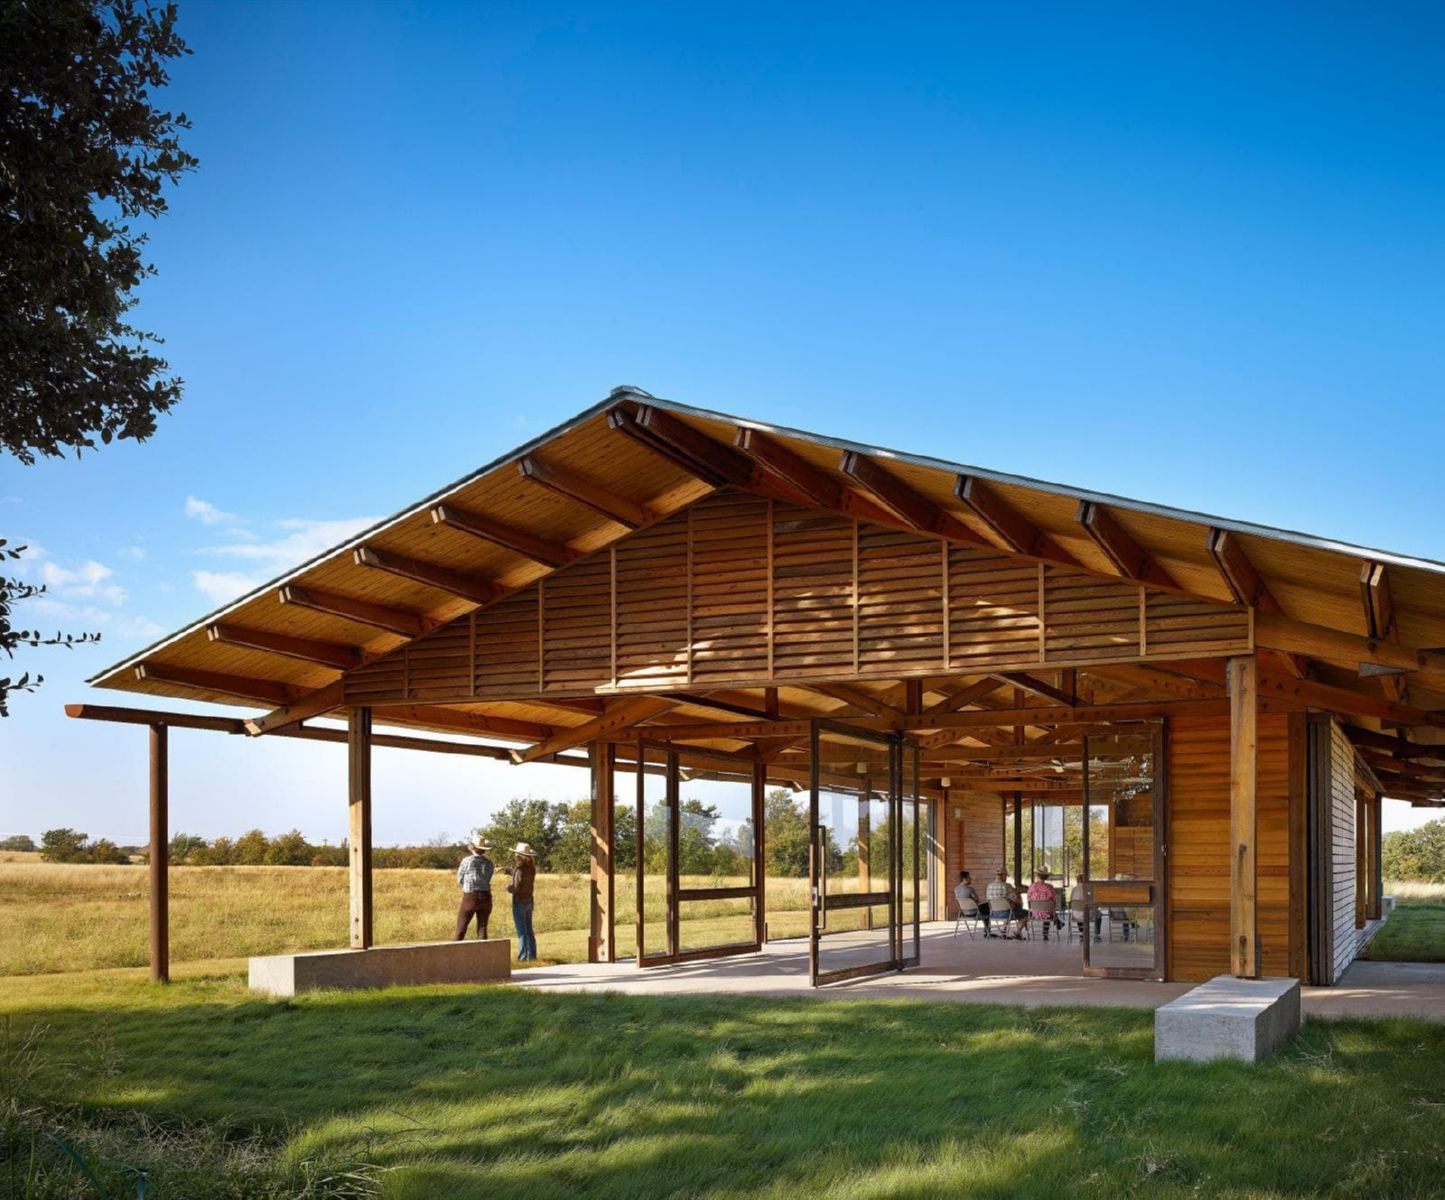 With aspirations to be the first Living Building project in Texas, this 5,400-square-foot open-air pavilion is an education and meeting ...